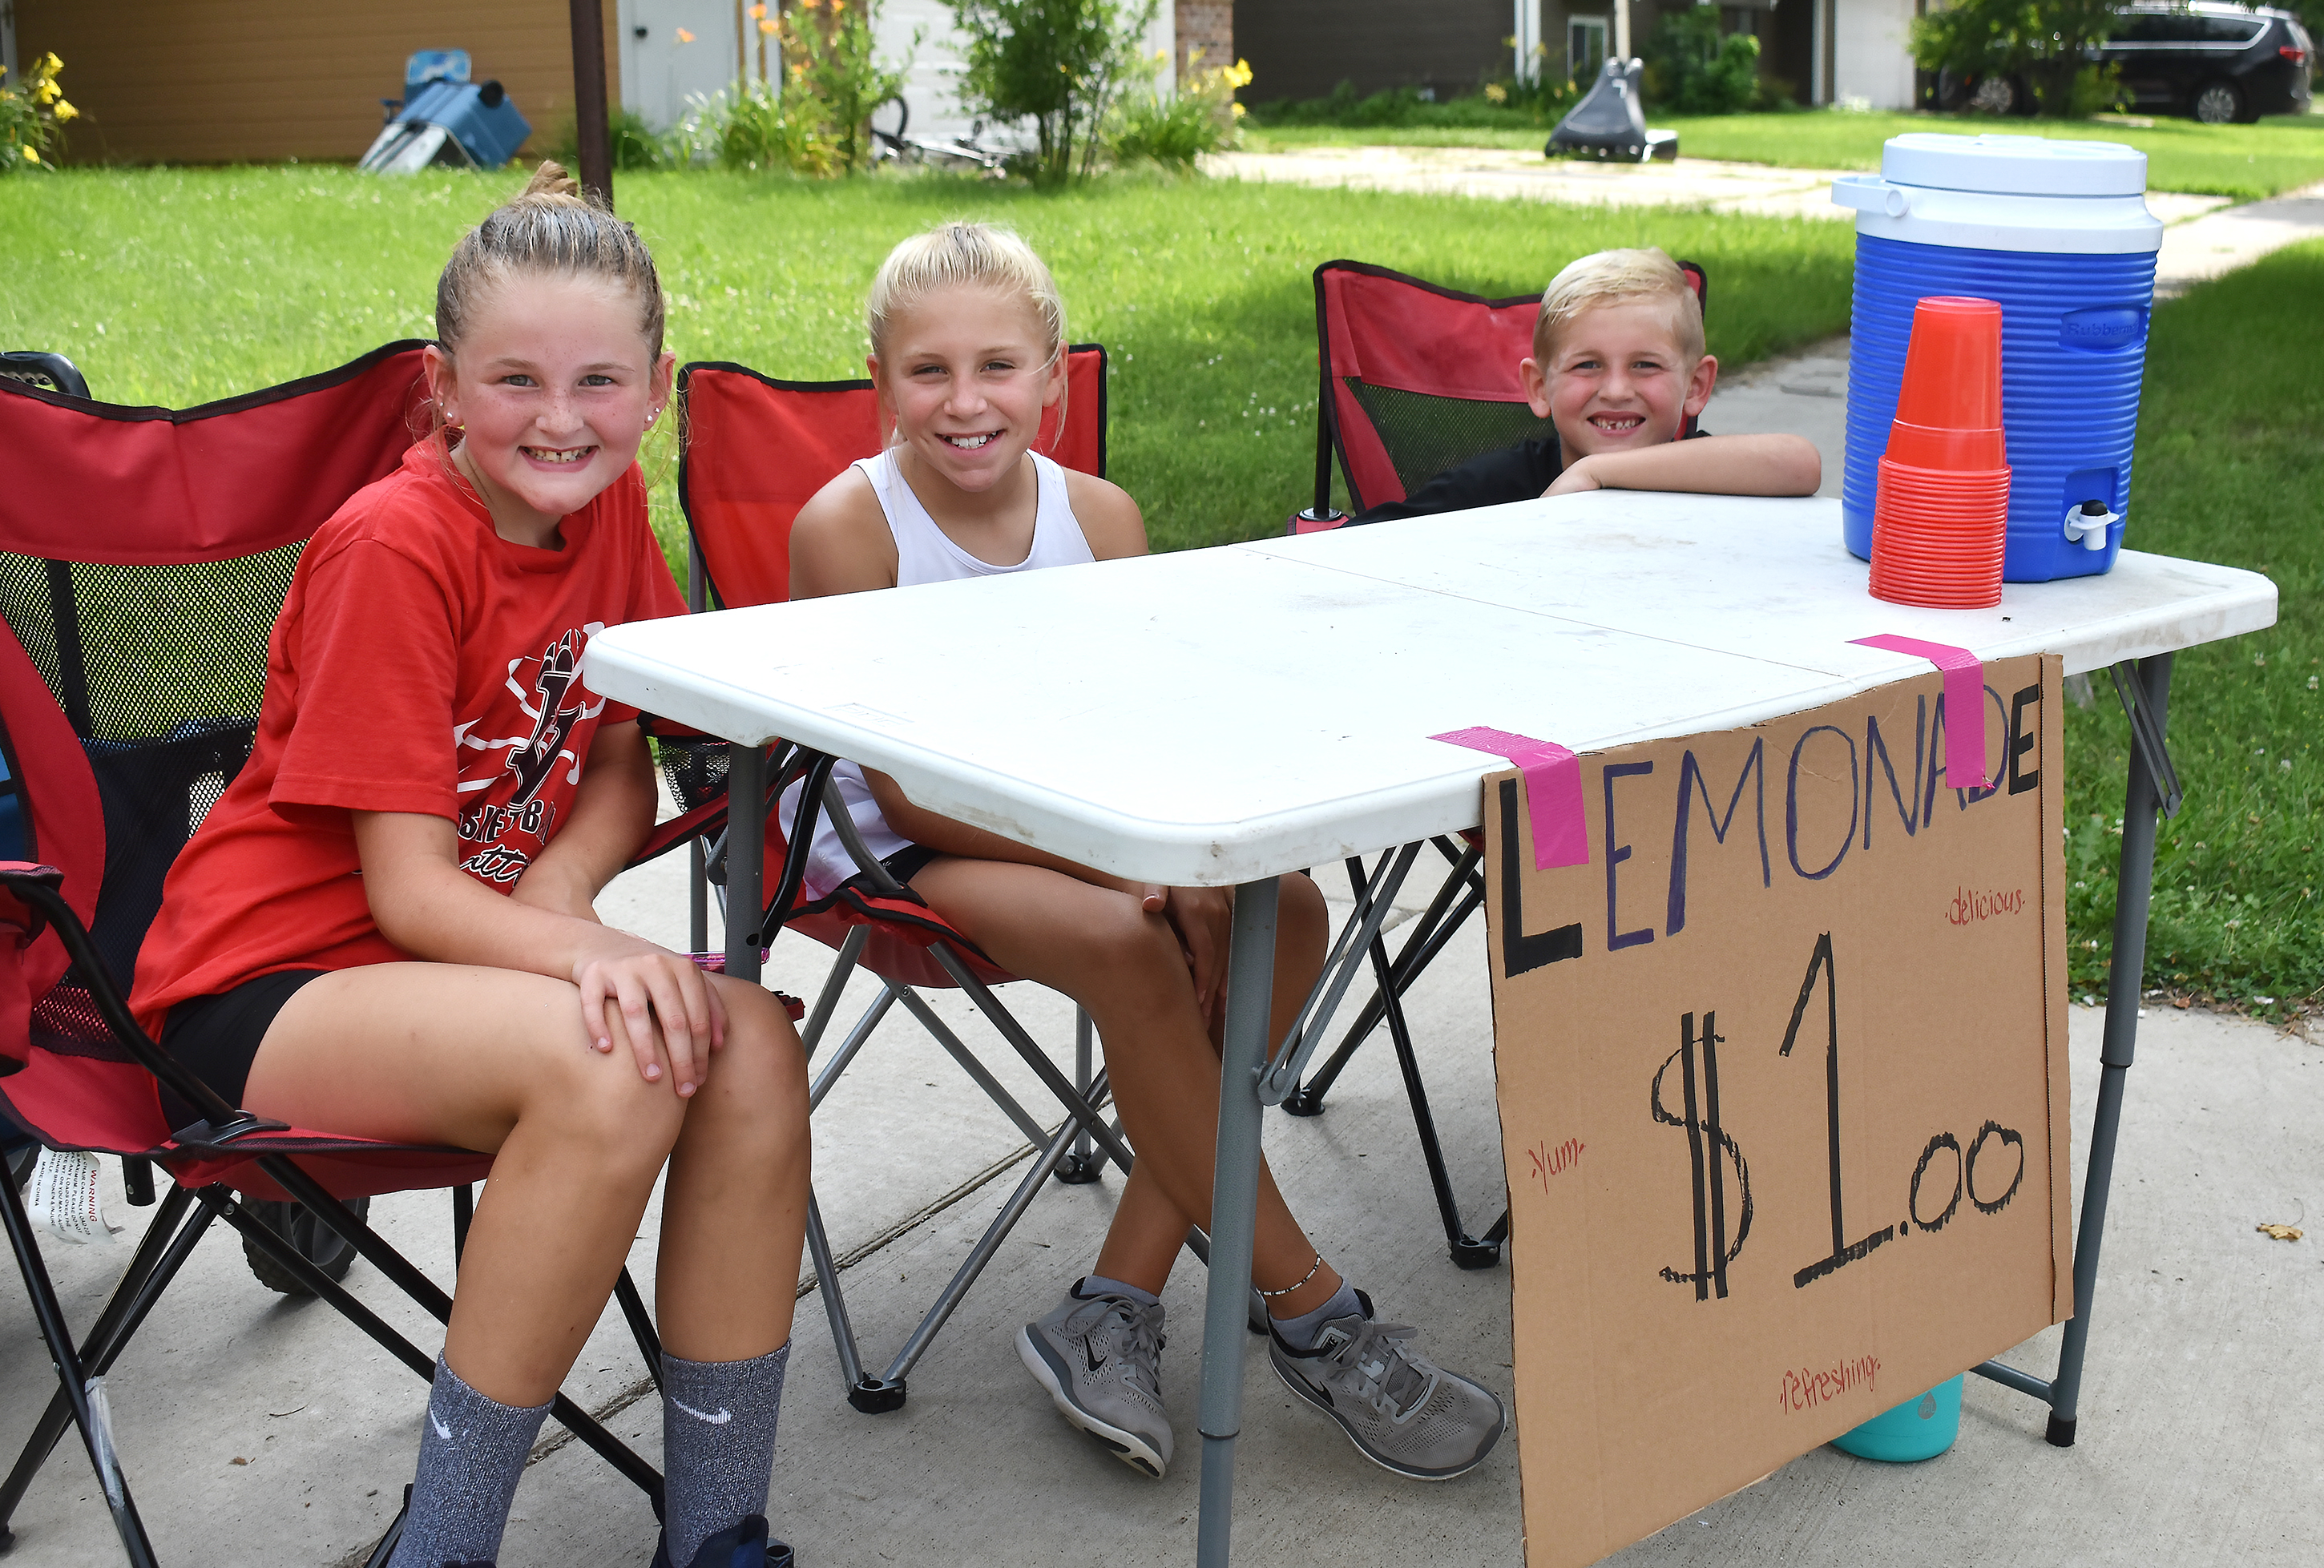 """<span class=""""s1"""">Tatum and Paxton Beckman and their friend, Shelby Bergan, sell lemonade in their neighborhood Friday in hopes of turning stand profits into extra spending cash. Tatum and Shelby, both 10, loaded up on Country Time pink lemonade and plastic cups at Dollar General before setting up shop near Robert Bennis Elementary. The friends headed to Oklahoma for church camp over the weekend and planned to hit the Omaha outlet malls on the way back, where Shelby supposed they might channel their hard-earned lemonade profits into new back-to-school clothes.<span class=""""Apple-converted-space""""><strong>Jamie Hult/BV Journal</strong></span></span>*/"""